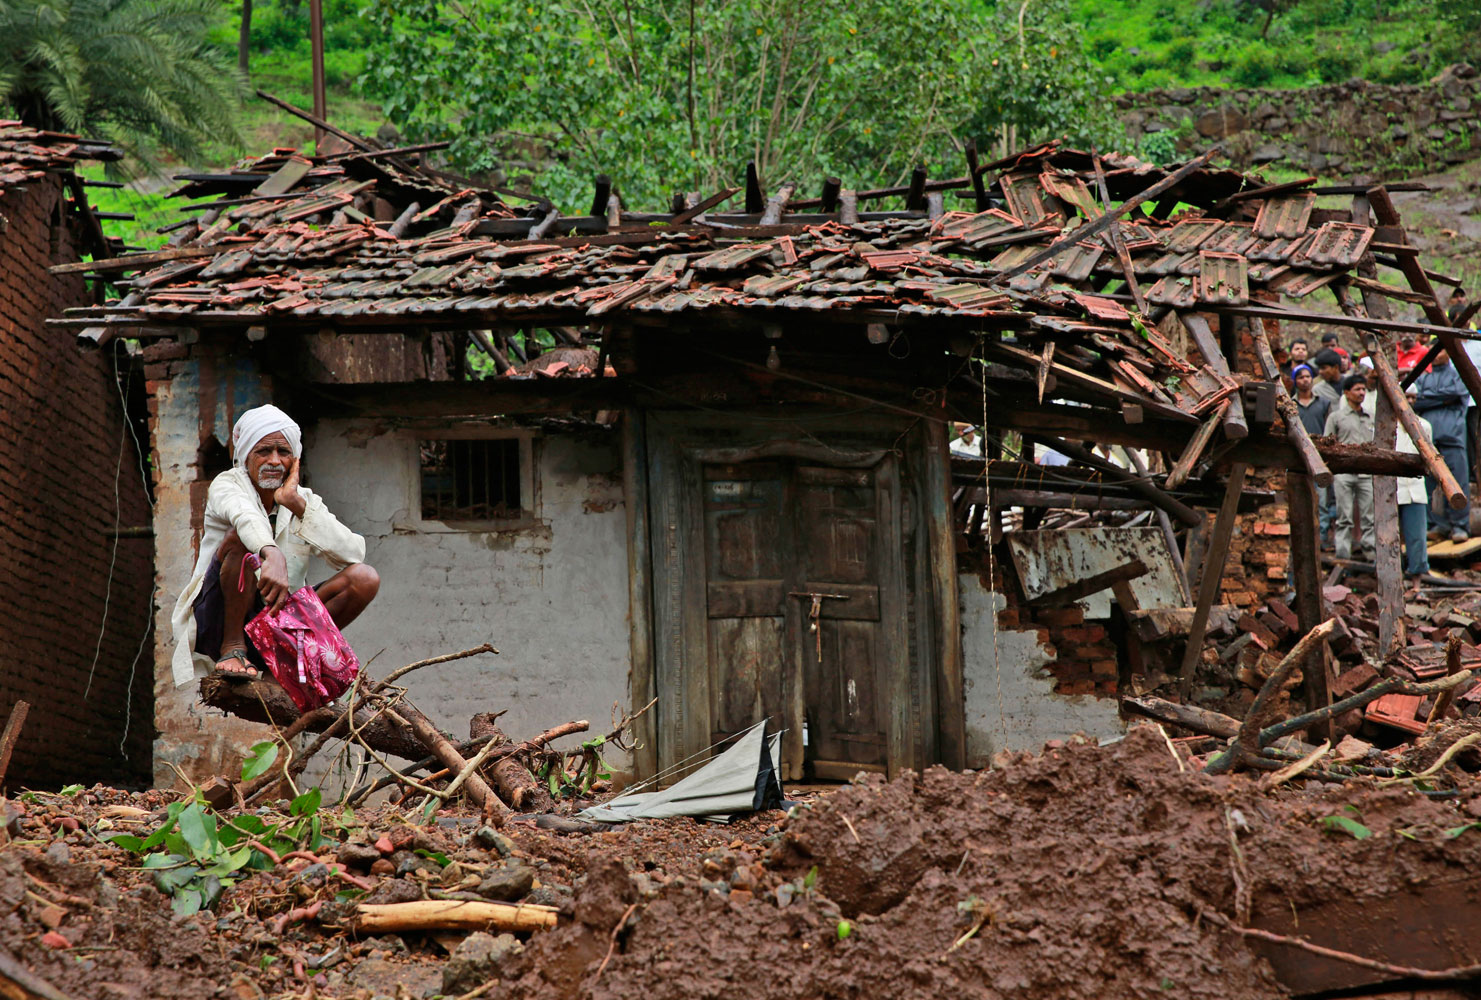 A villager watches a rescue operation sitting by his damaged house at the site of a landslide in Malin village, in the western Indian state of Maharashtra on Aug. 1, 2014.